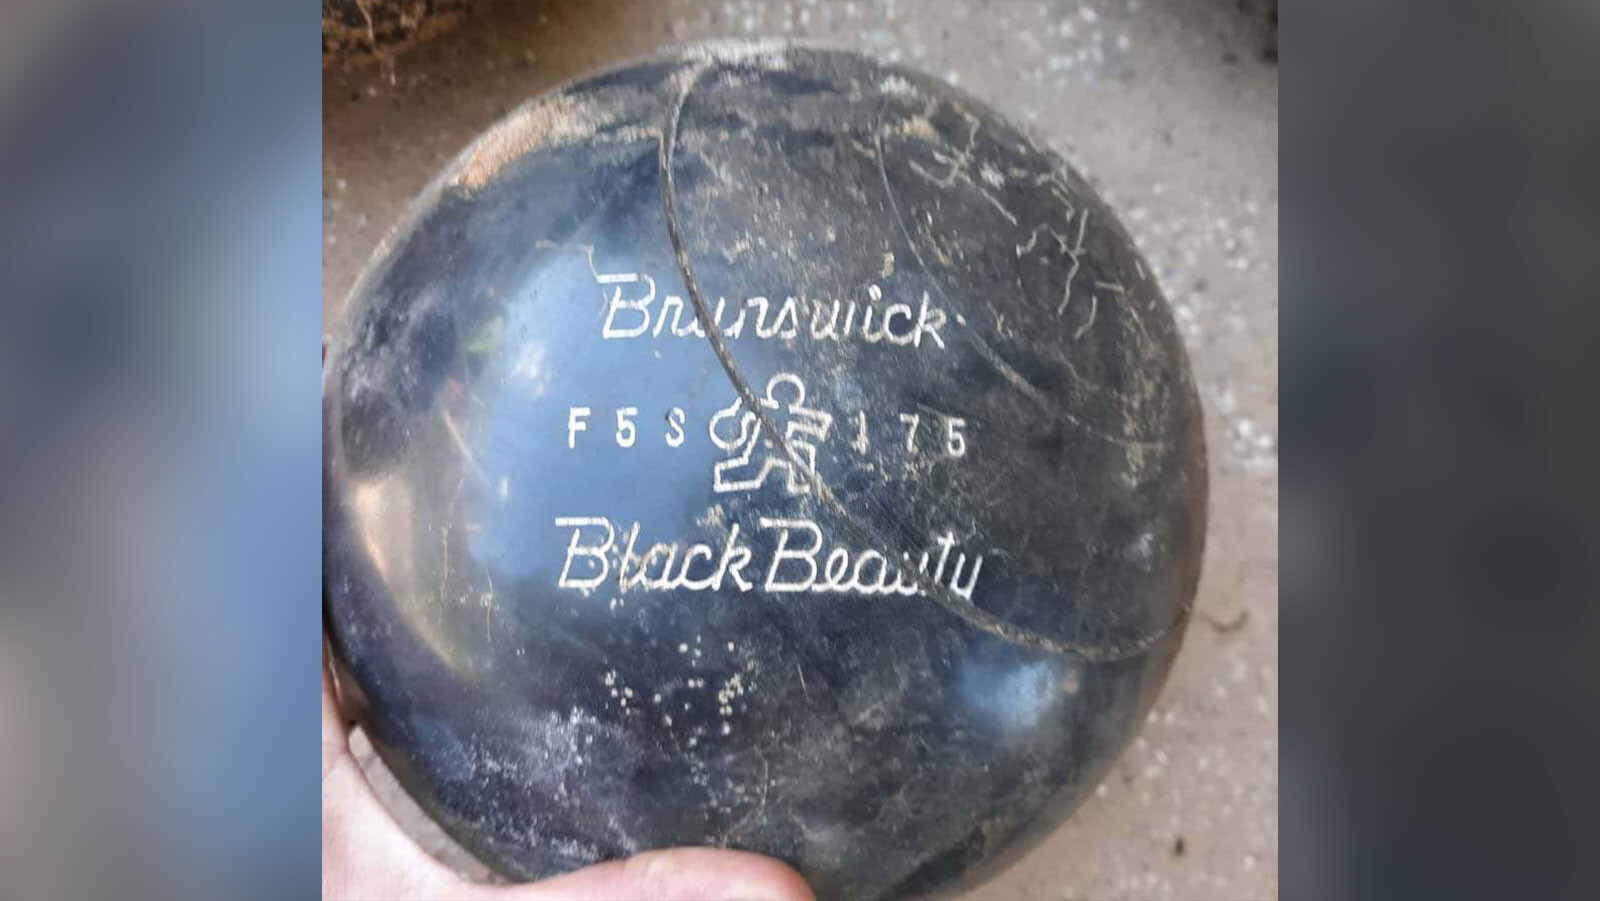 Home renovation leads to the discovery of over 150 bowling balls under a family's porch